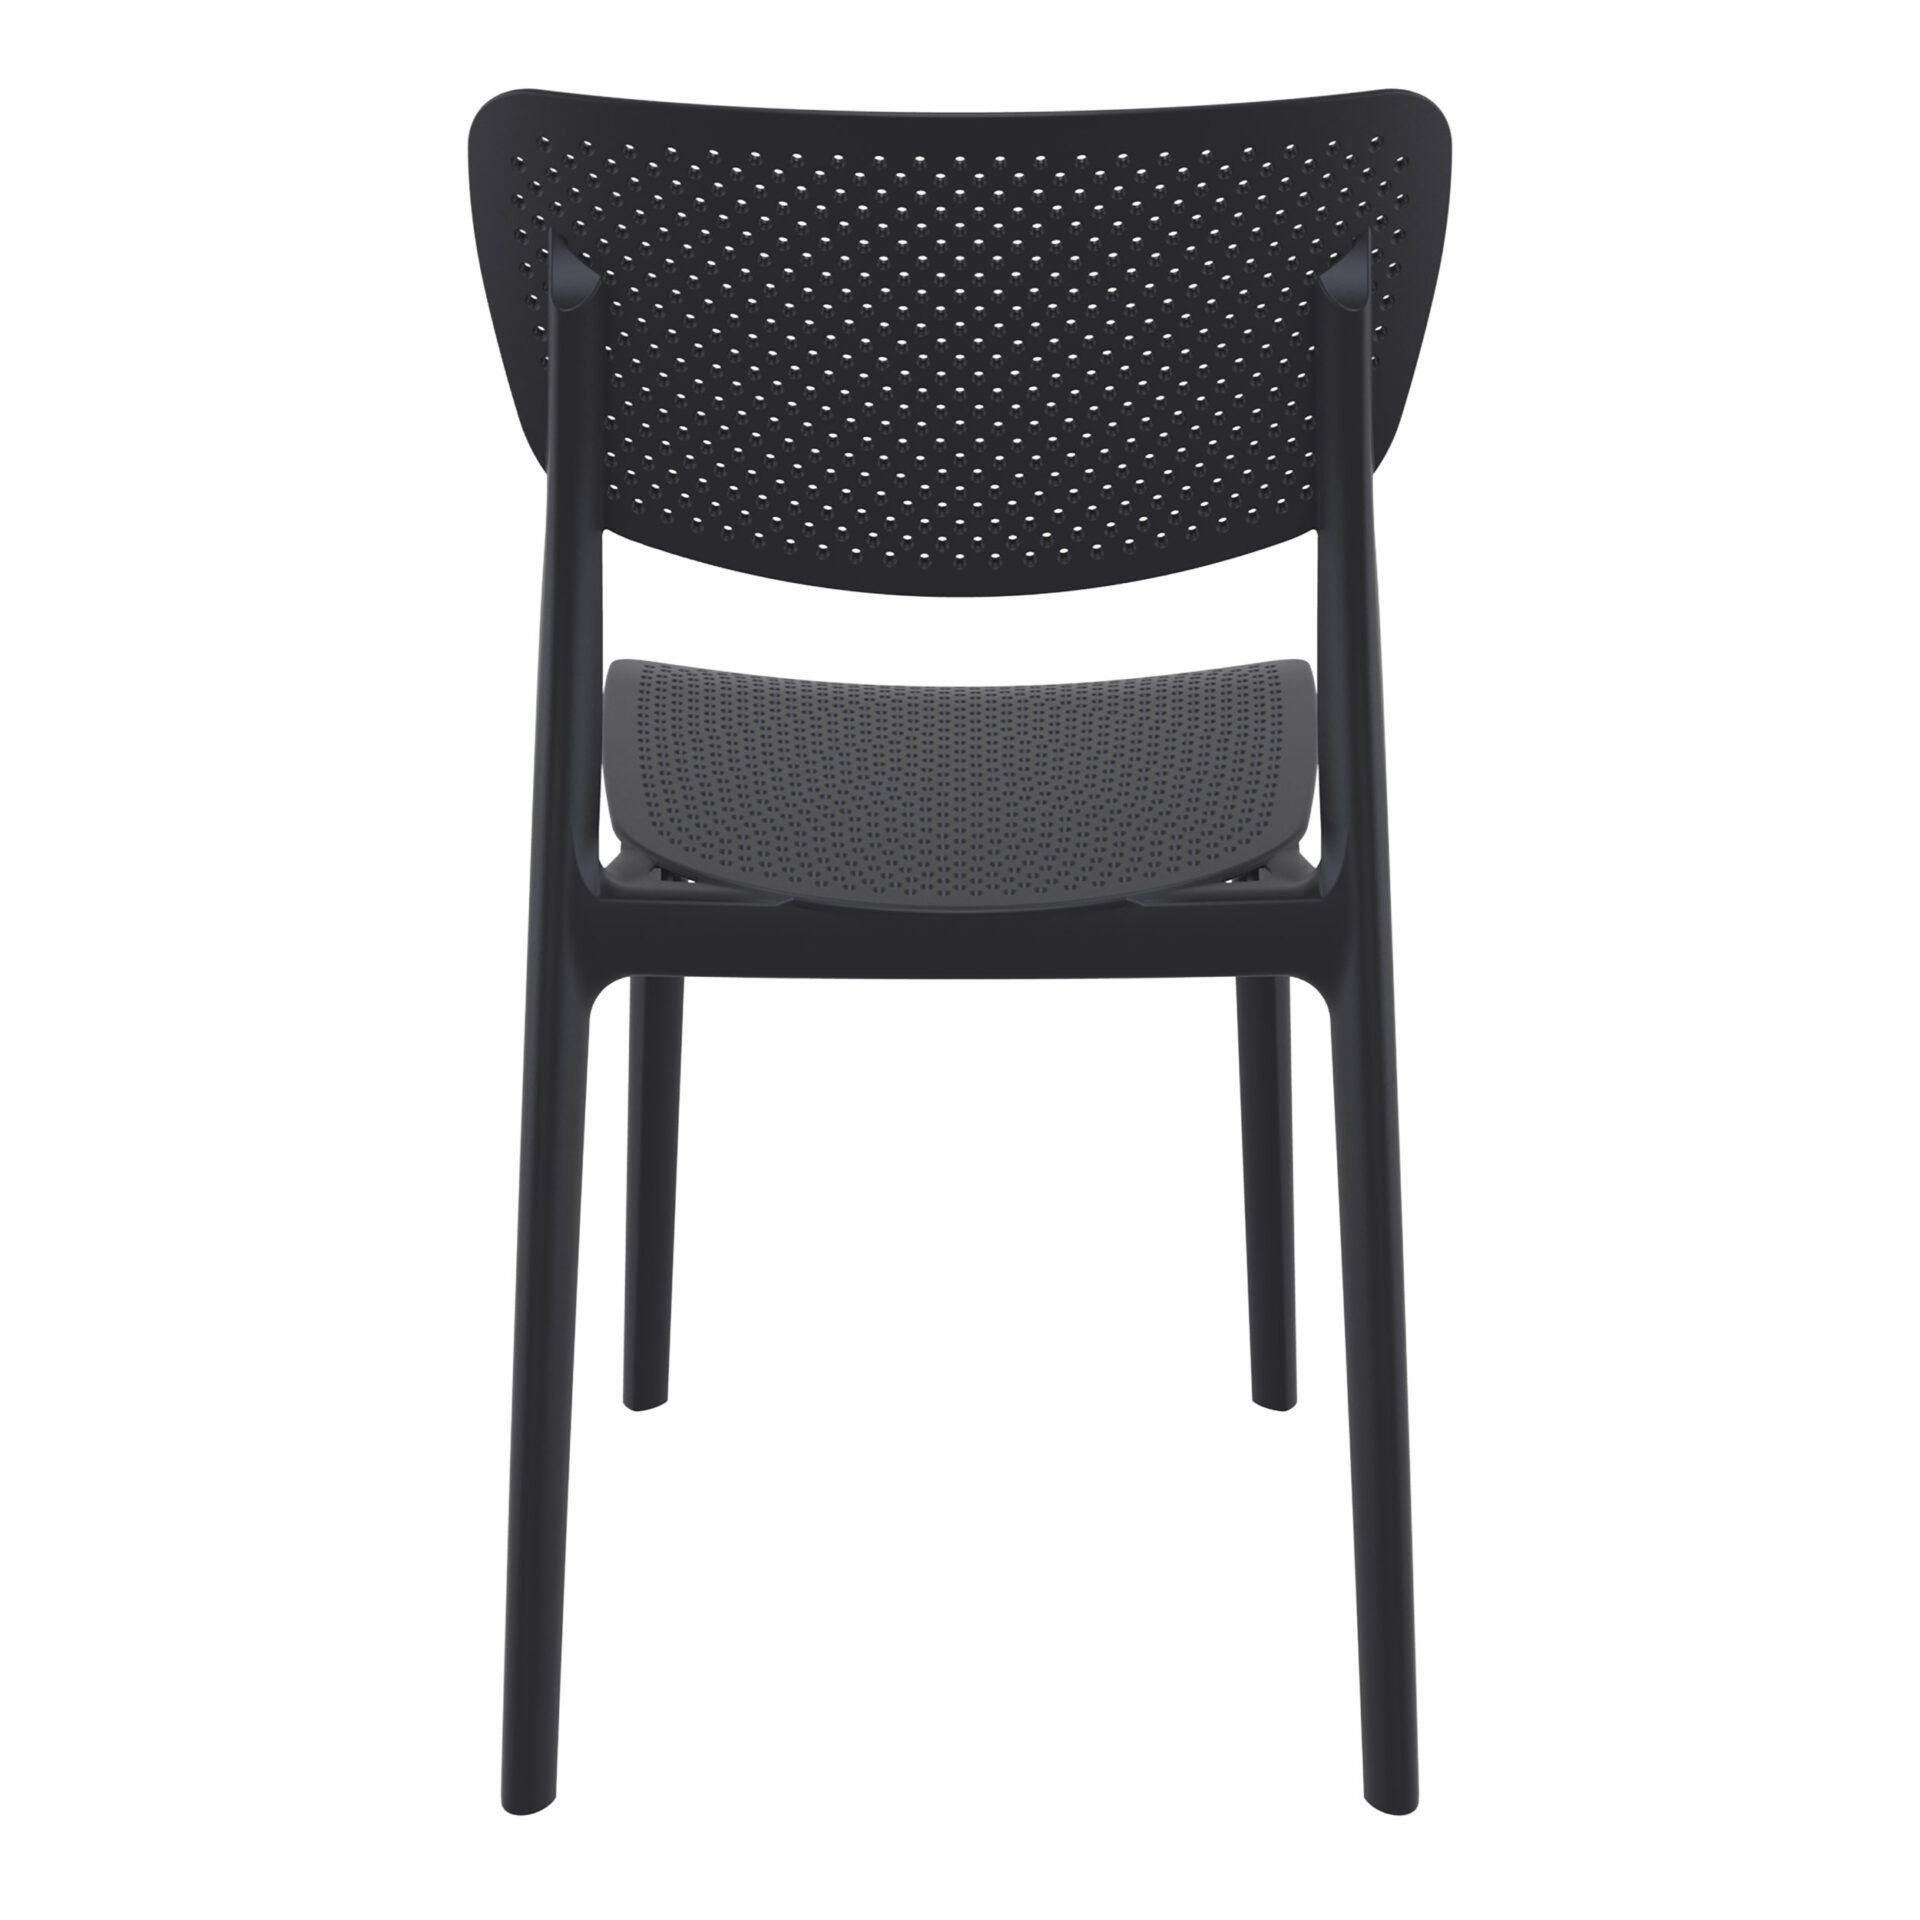 polypropylene hospitality seating lucy chair black back